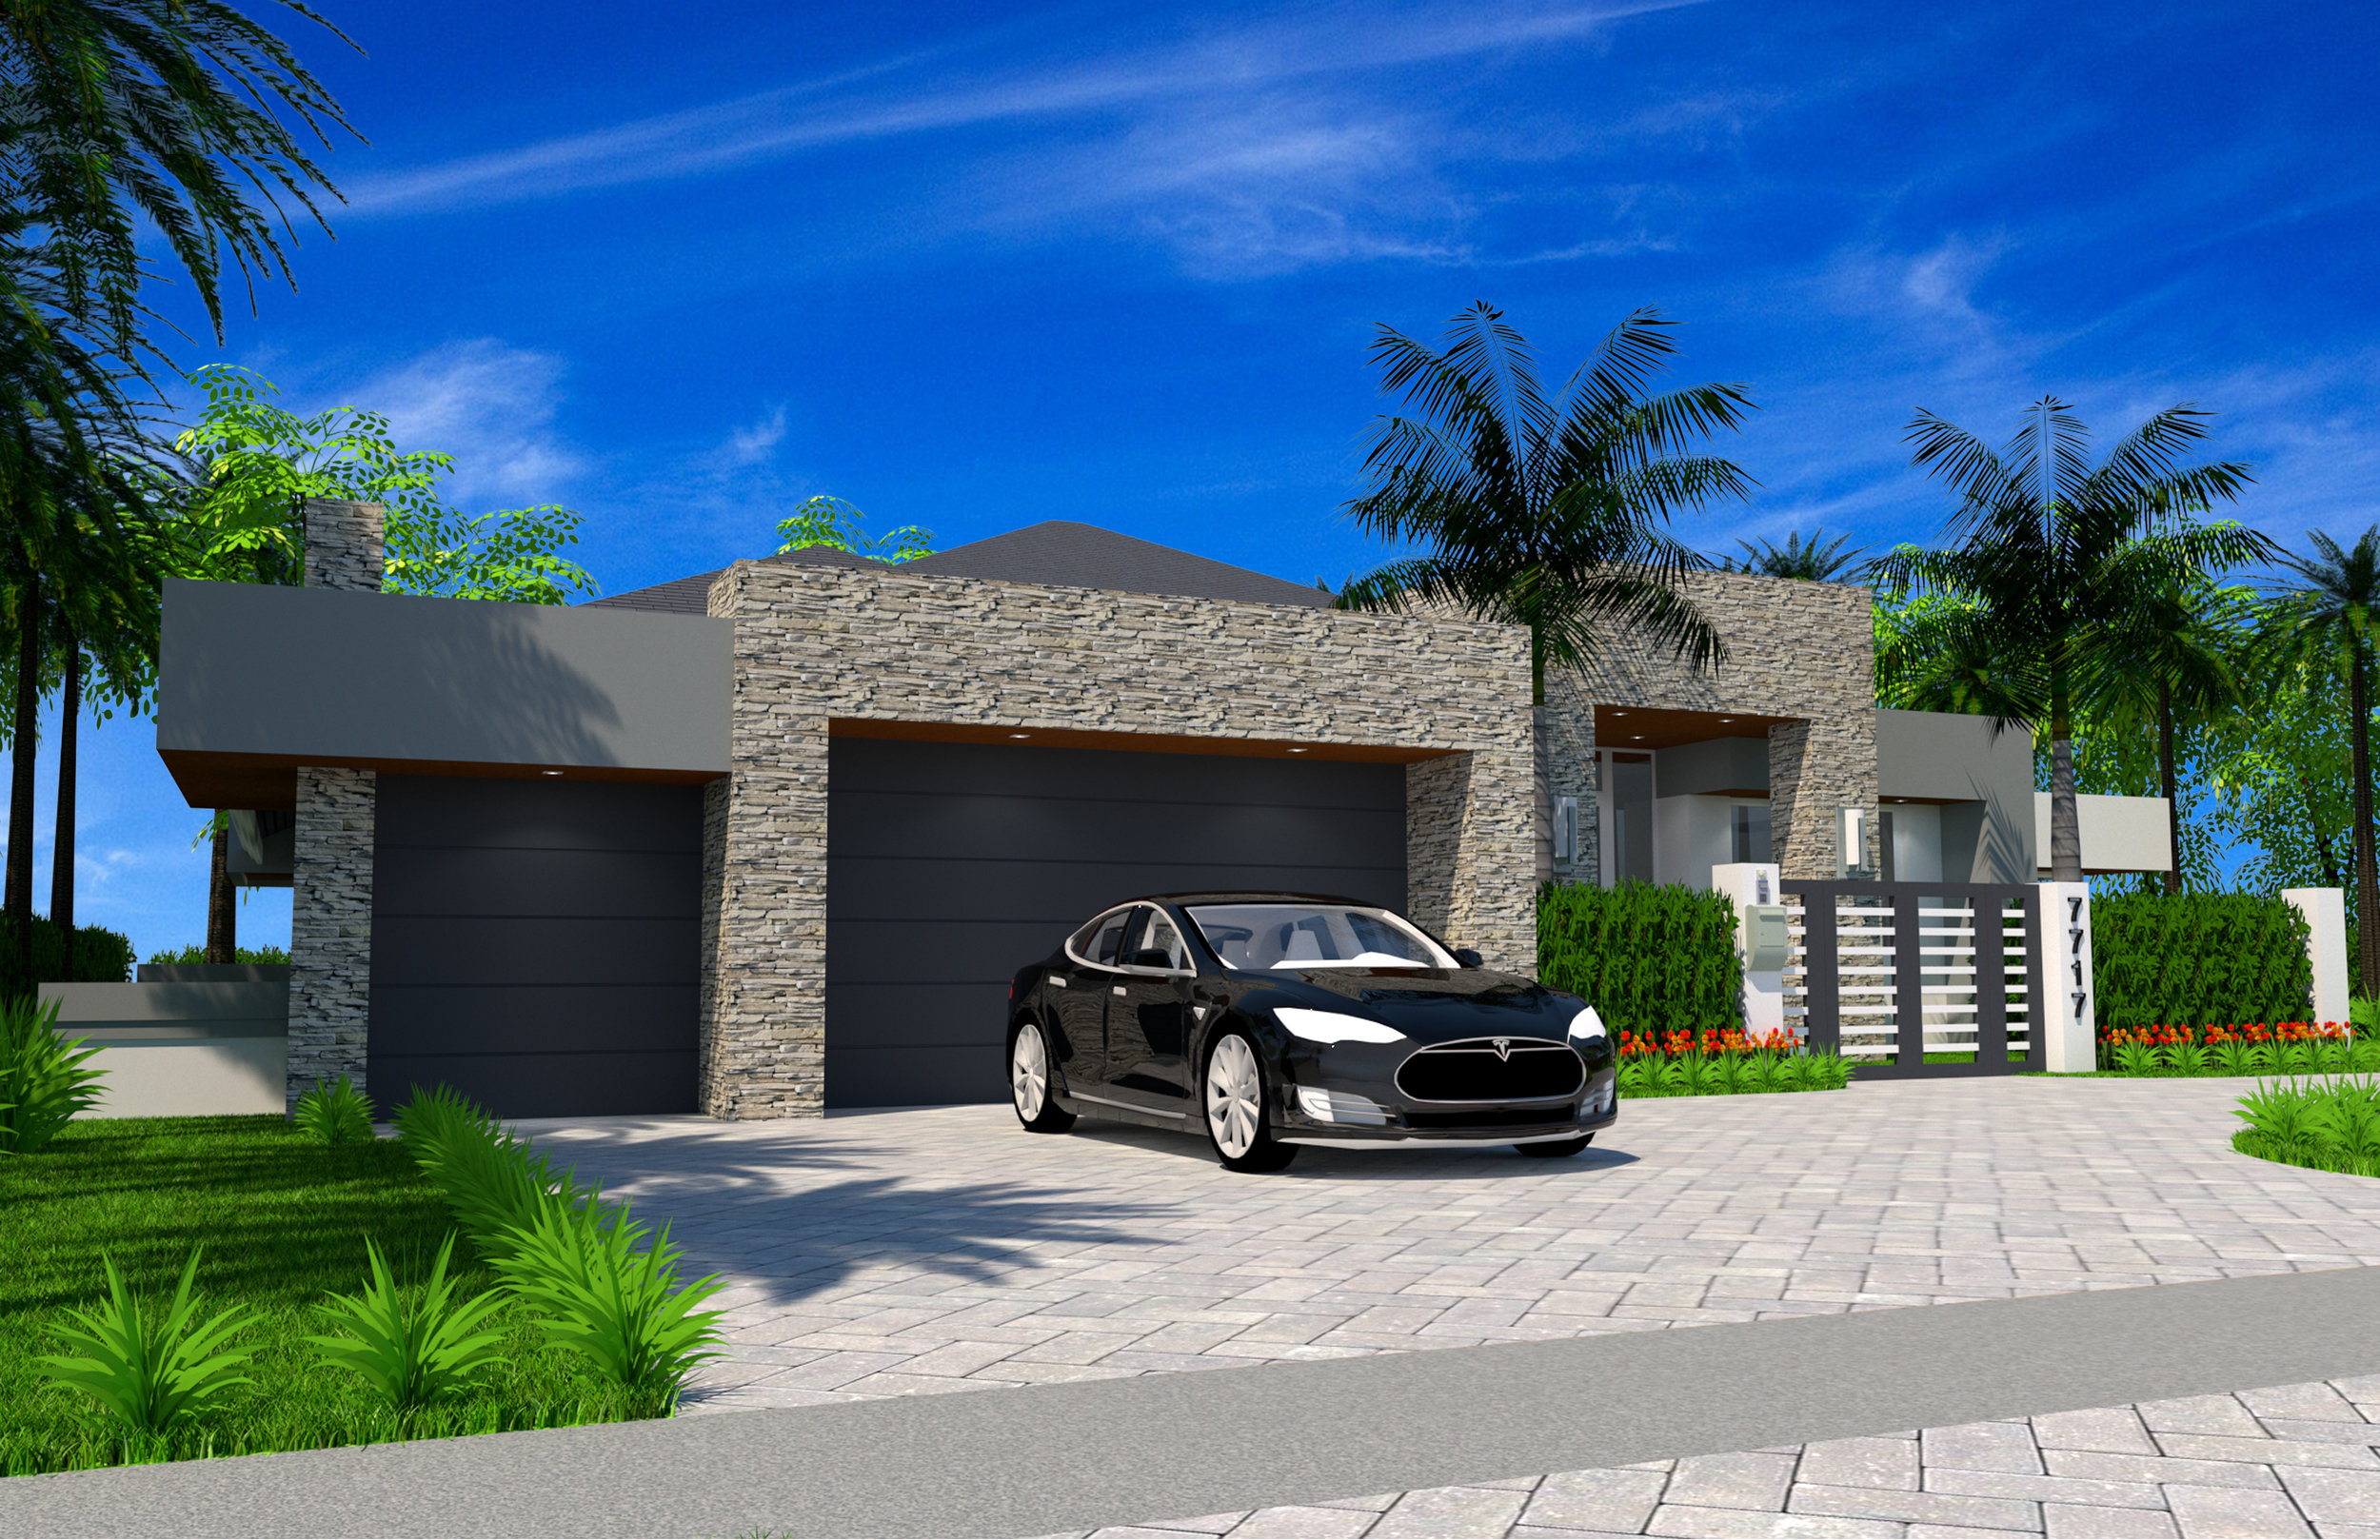 new-build-floria-architecture-render-modern-home